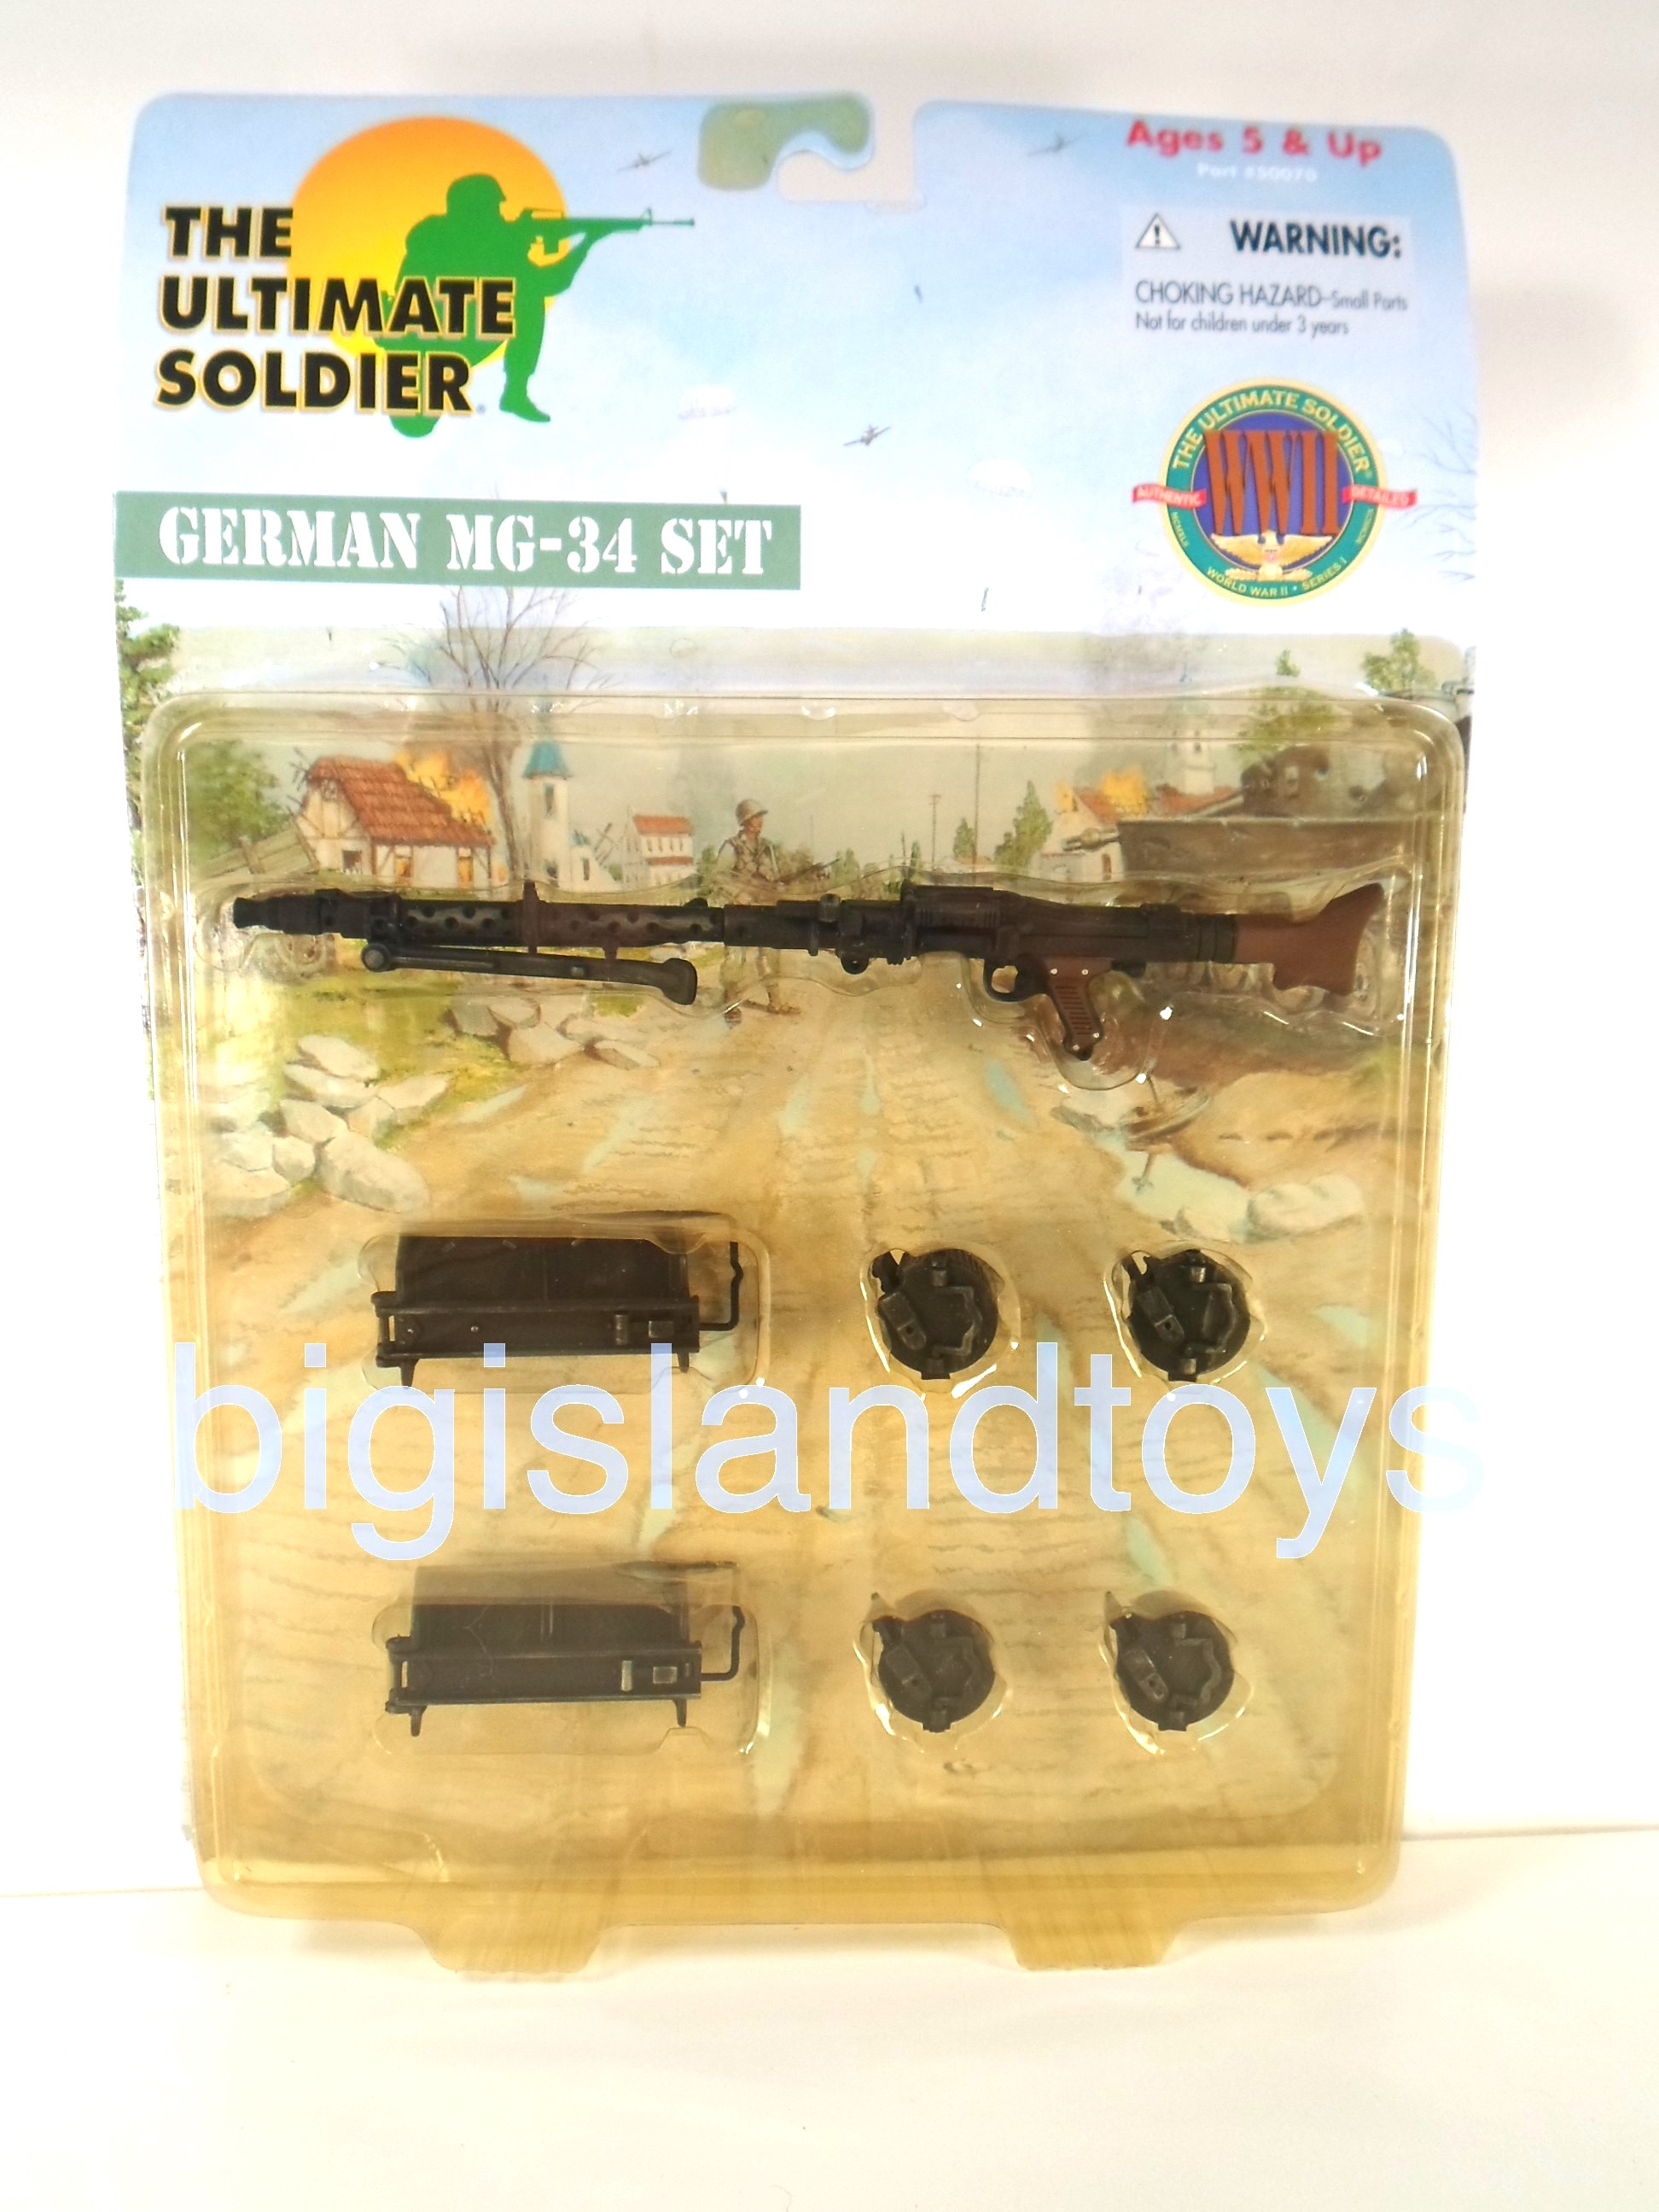 The Ultimate Soldier     German MG-34 Set